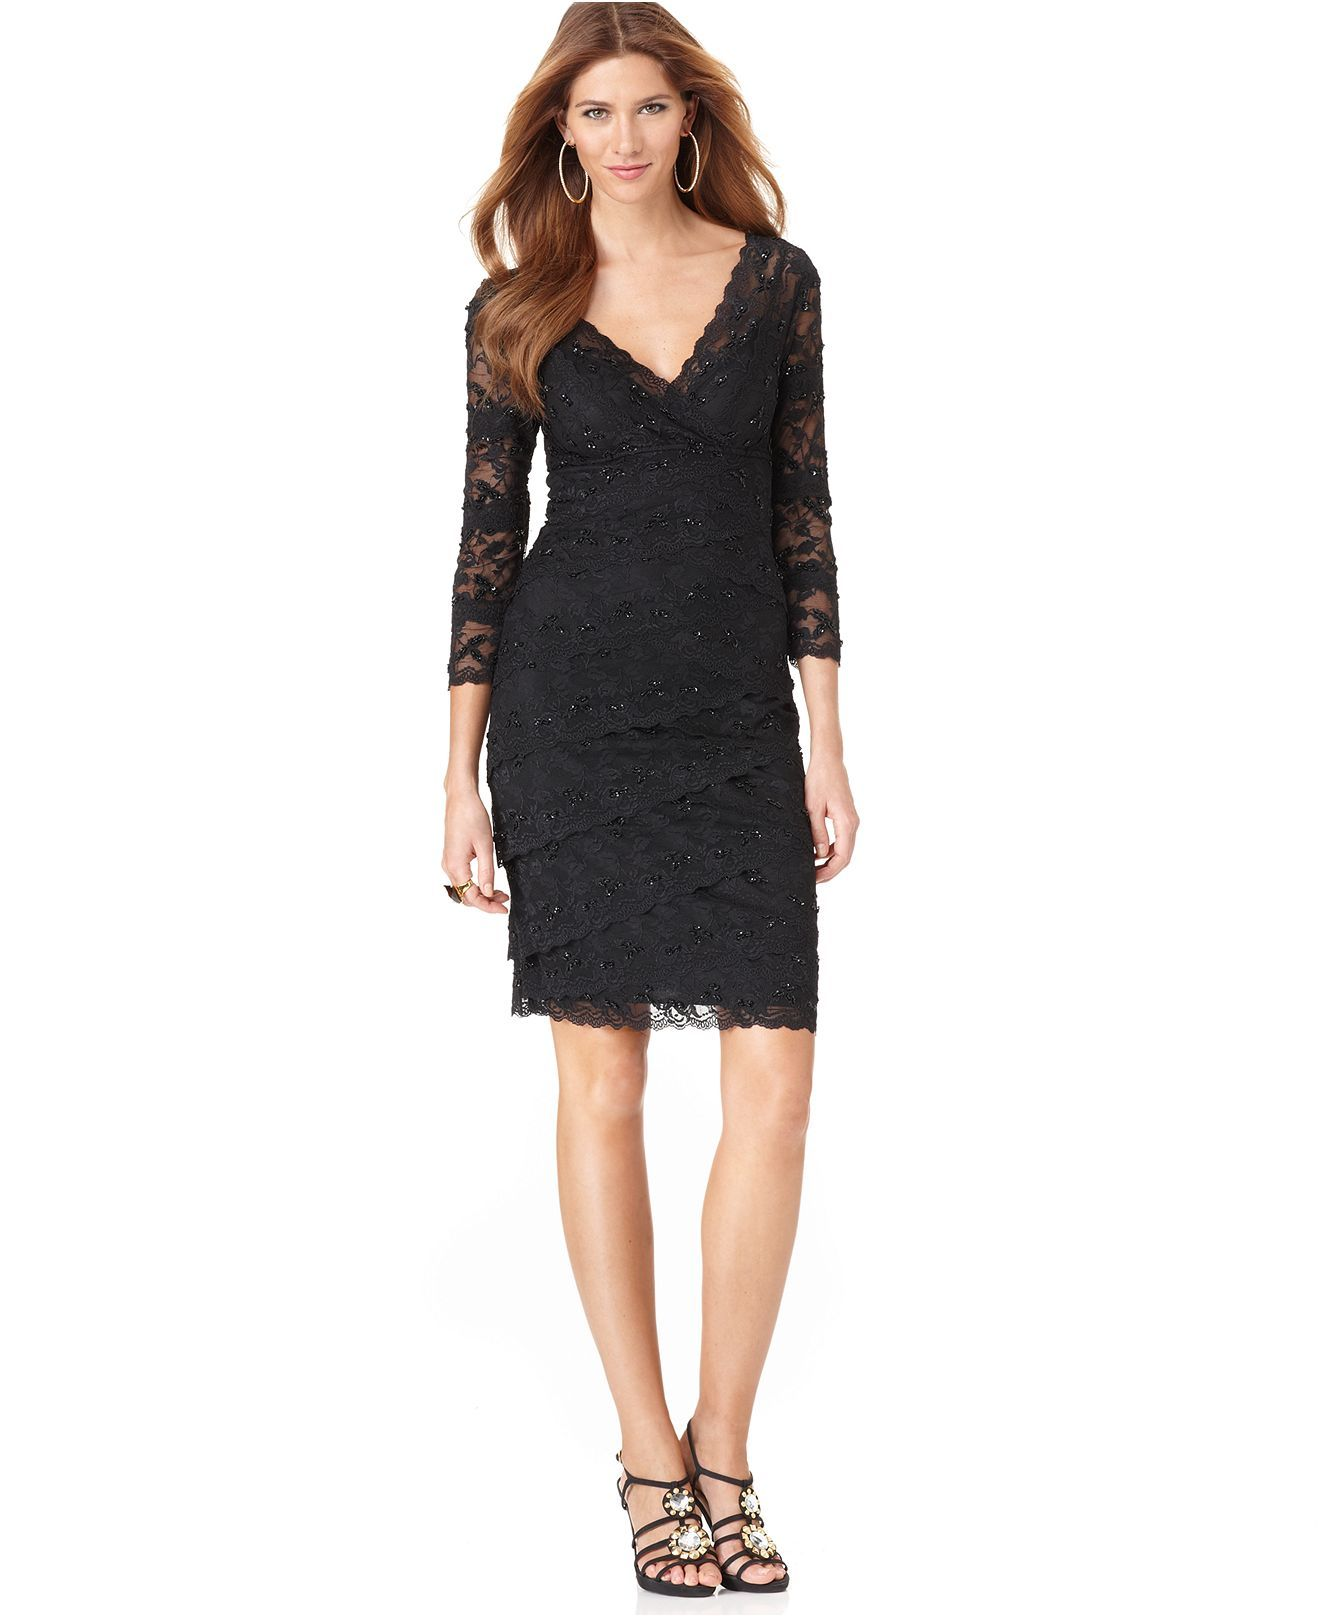 Marina Dress Three Quarter Sleeve Tiered Lace Cocktail Dress Womens Mother Of Cocktail Dresses With Sleeves Cocktail Dress Lace Black Lace Long Sleeve Dress [ 1616 x 1320 Pixel ]